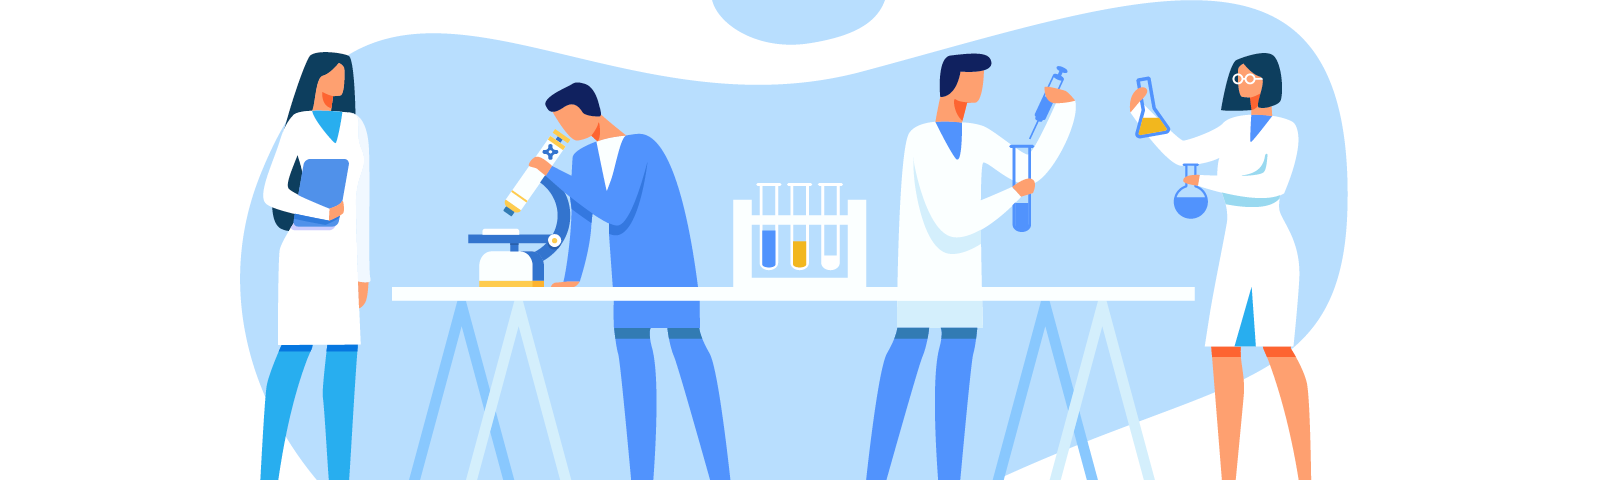 Illustrations of scientists in white coats checking beakers full of fluid